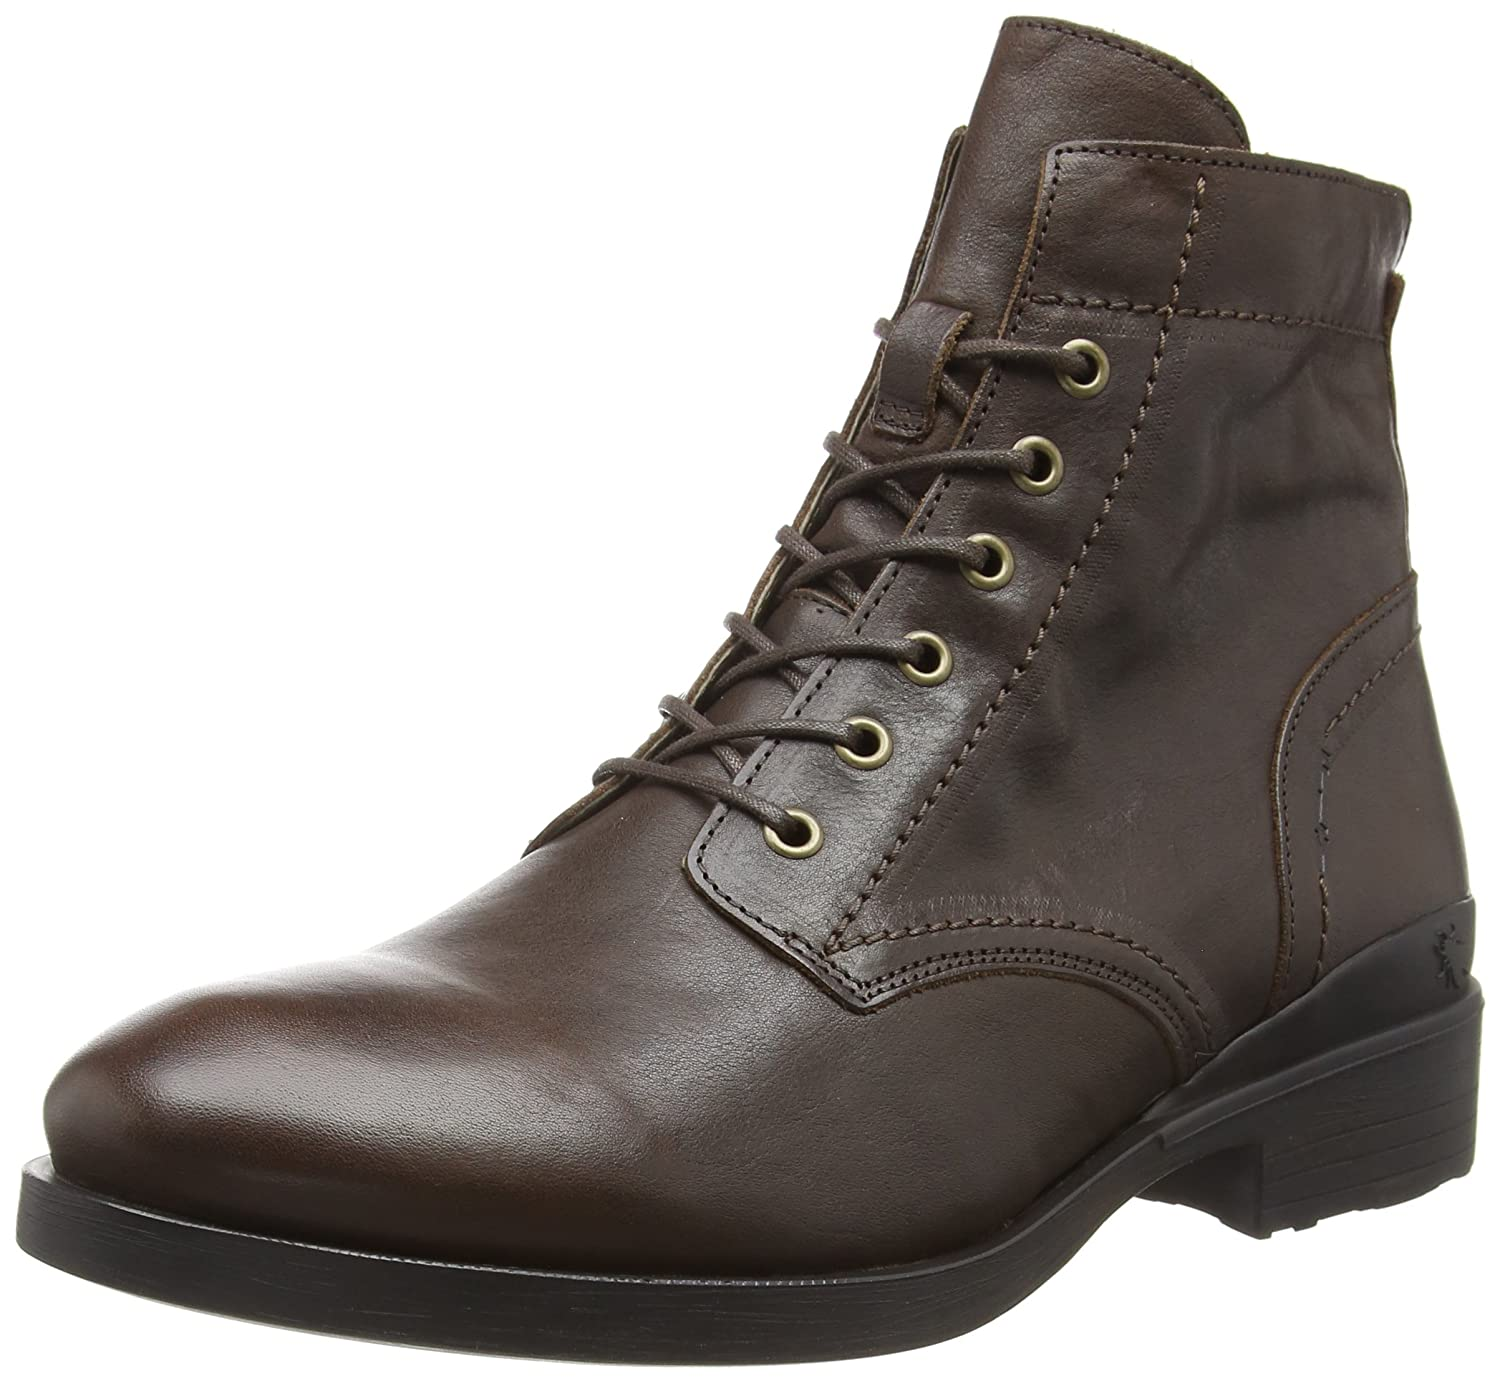 TALLA 41 EU. Fly London Marc343fly, Botas Clasicas para Hombre